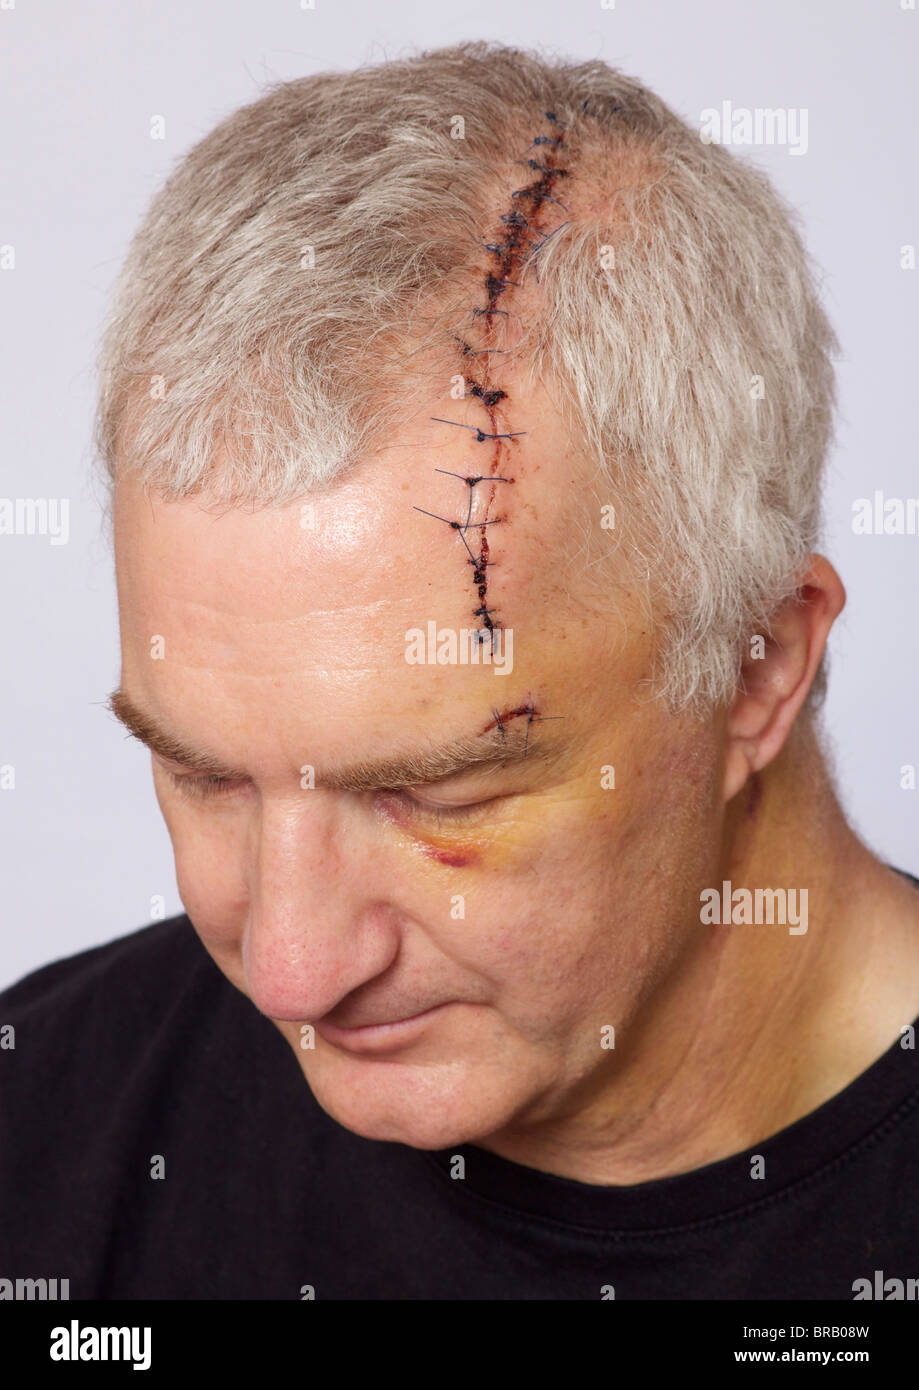 man with long head wound and stitches stock photo 31589177 alamy